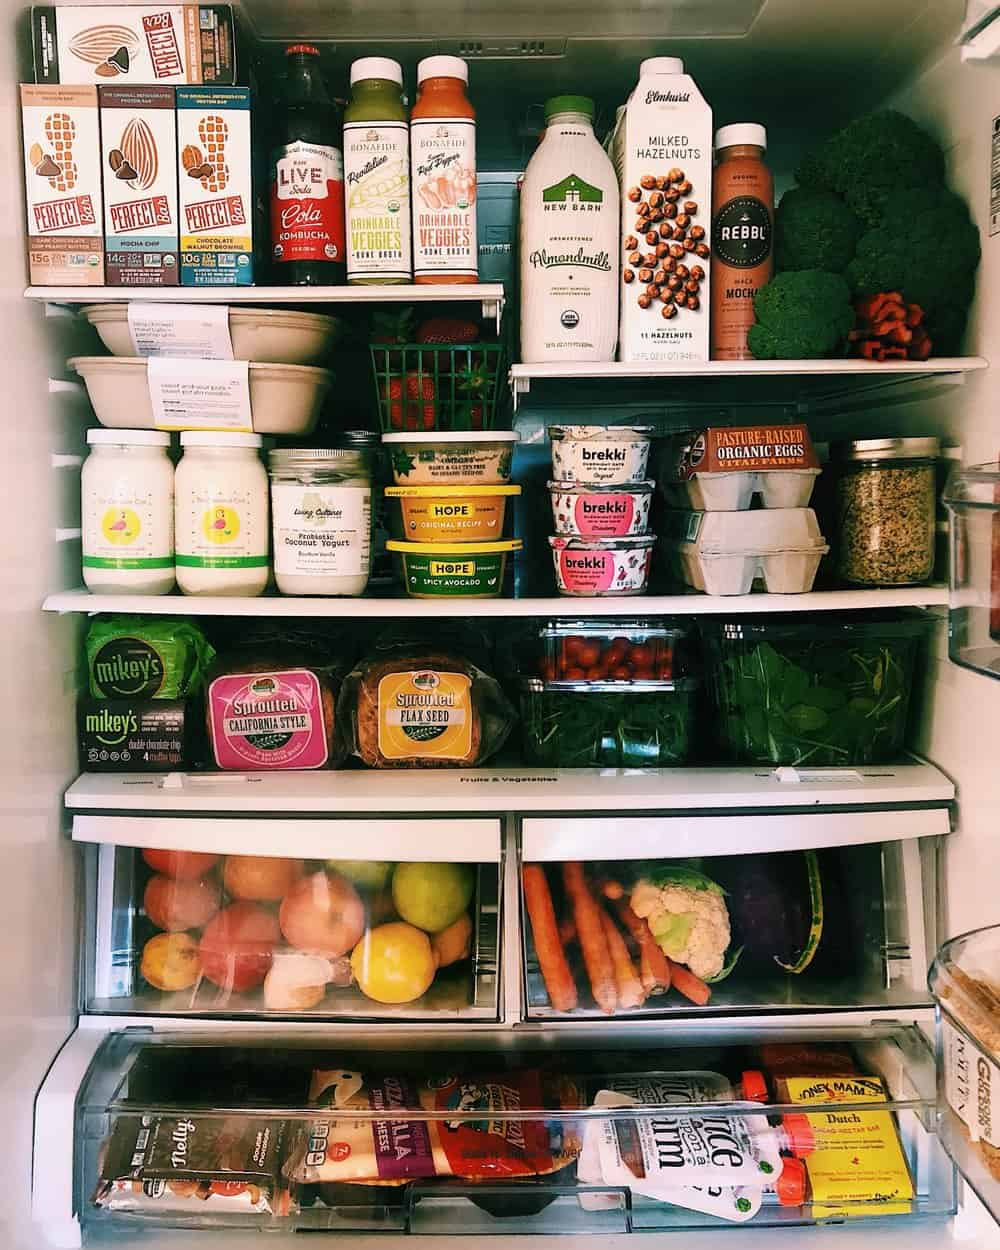 IN THE KALEJUNKIE FRIDGE - There is nothing quite like a refrigerator that is locked, loaded, and ready for the week. My Sunday routine almost always includes a quick fridge clean out, which means taking everything out, placing it on the counter, wiping down the inside, and moving items close to their expiration dates to the front so that we eat them asap. Then I make a list of what items I need to get from the grocery store or farmers market, pile the boys in the car, and get that shopping done. Staying organized in this way helps so that I don't buy more than we need, reducing our overall waste.